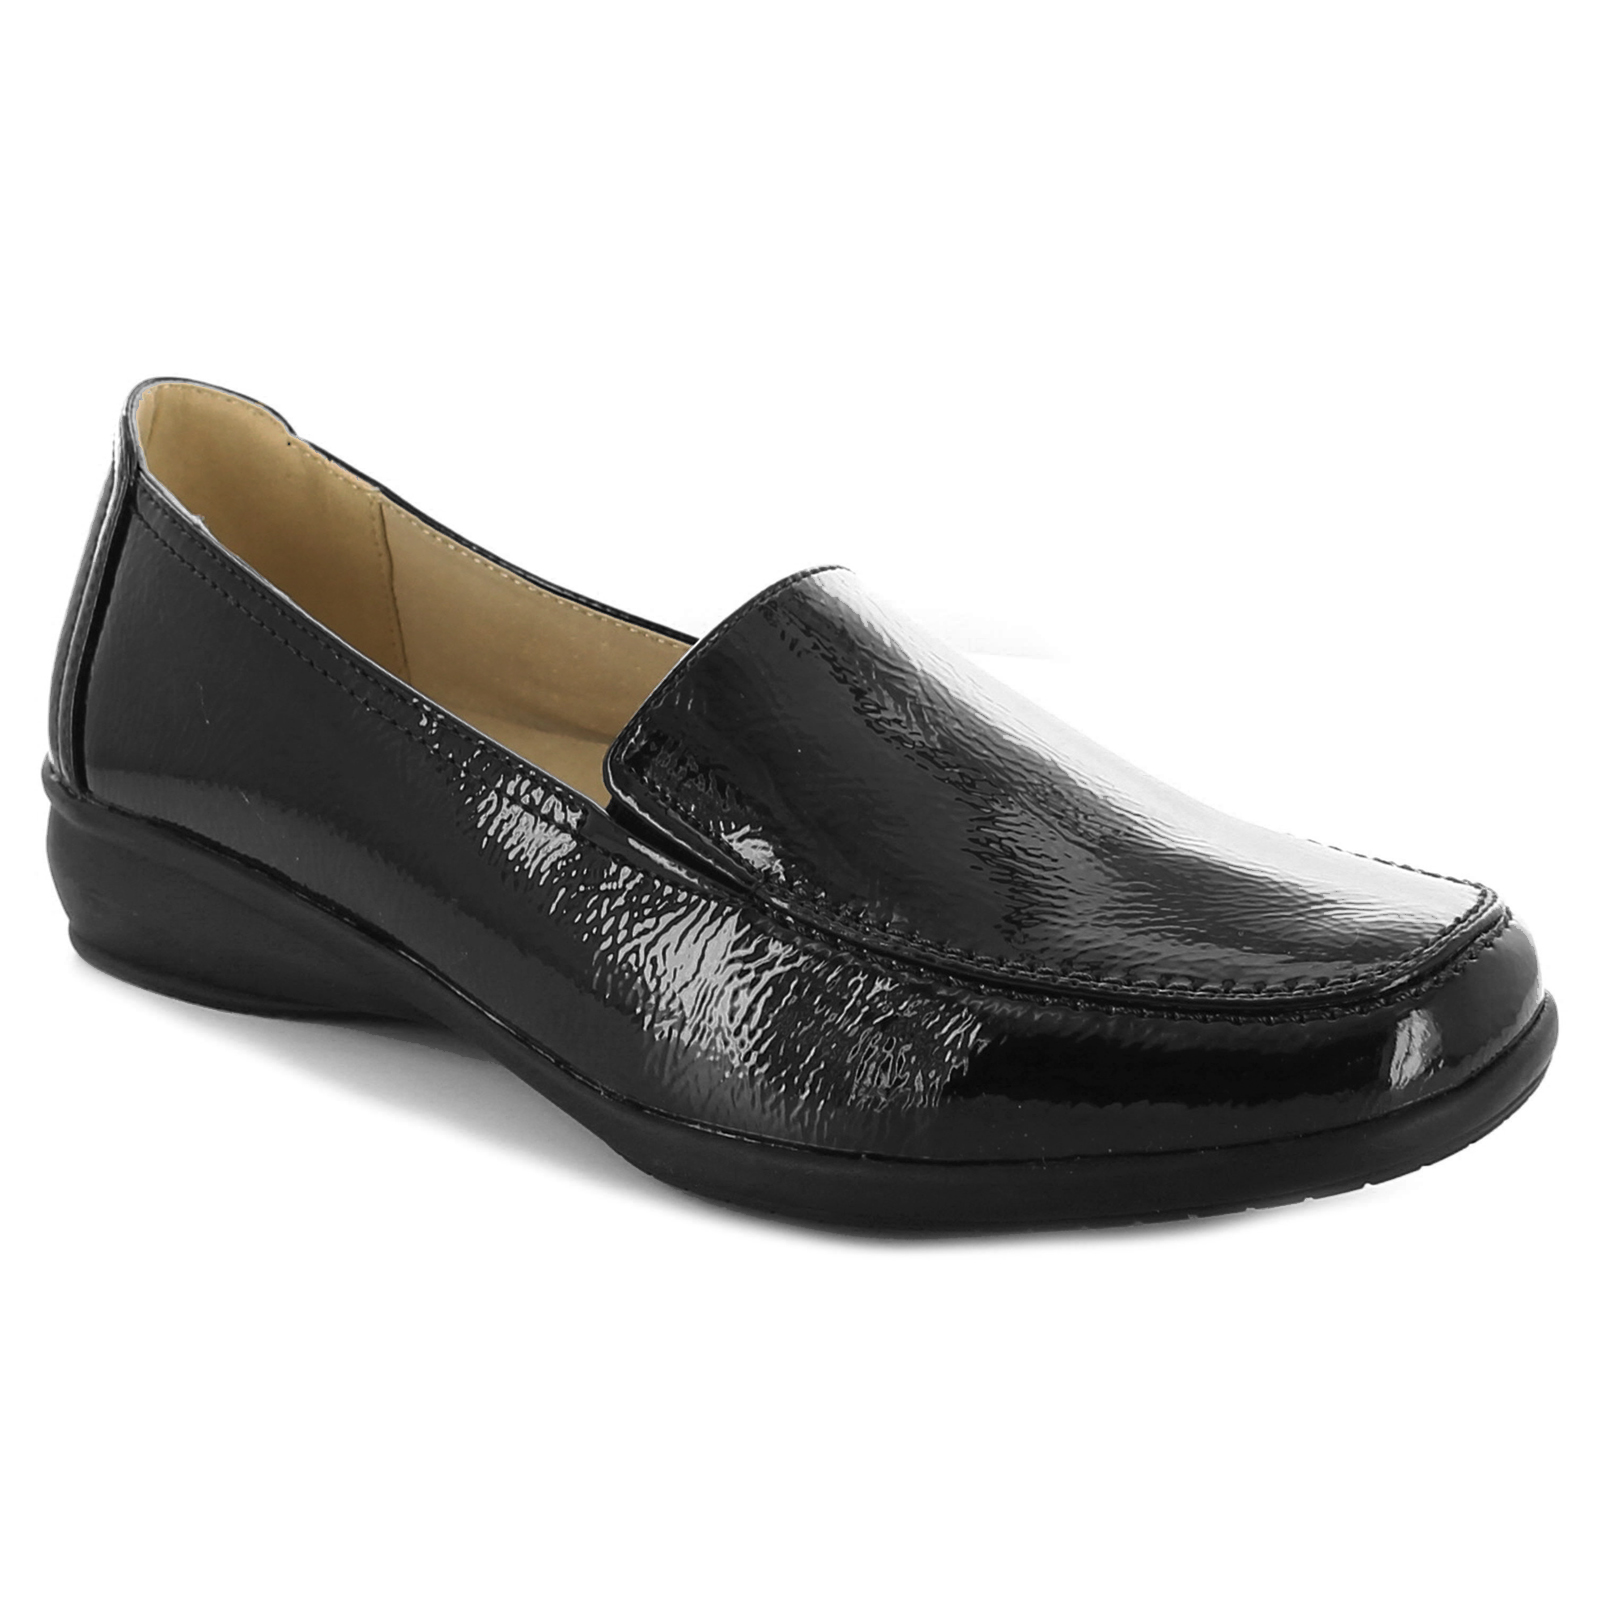 Womens Wide Fit Loafer Shoe in Black by Dr Keller Sally